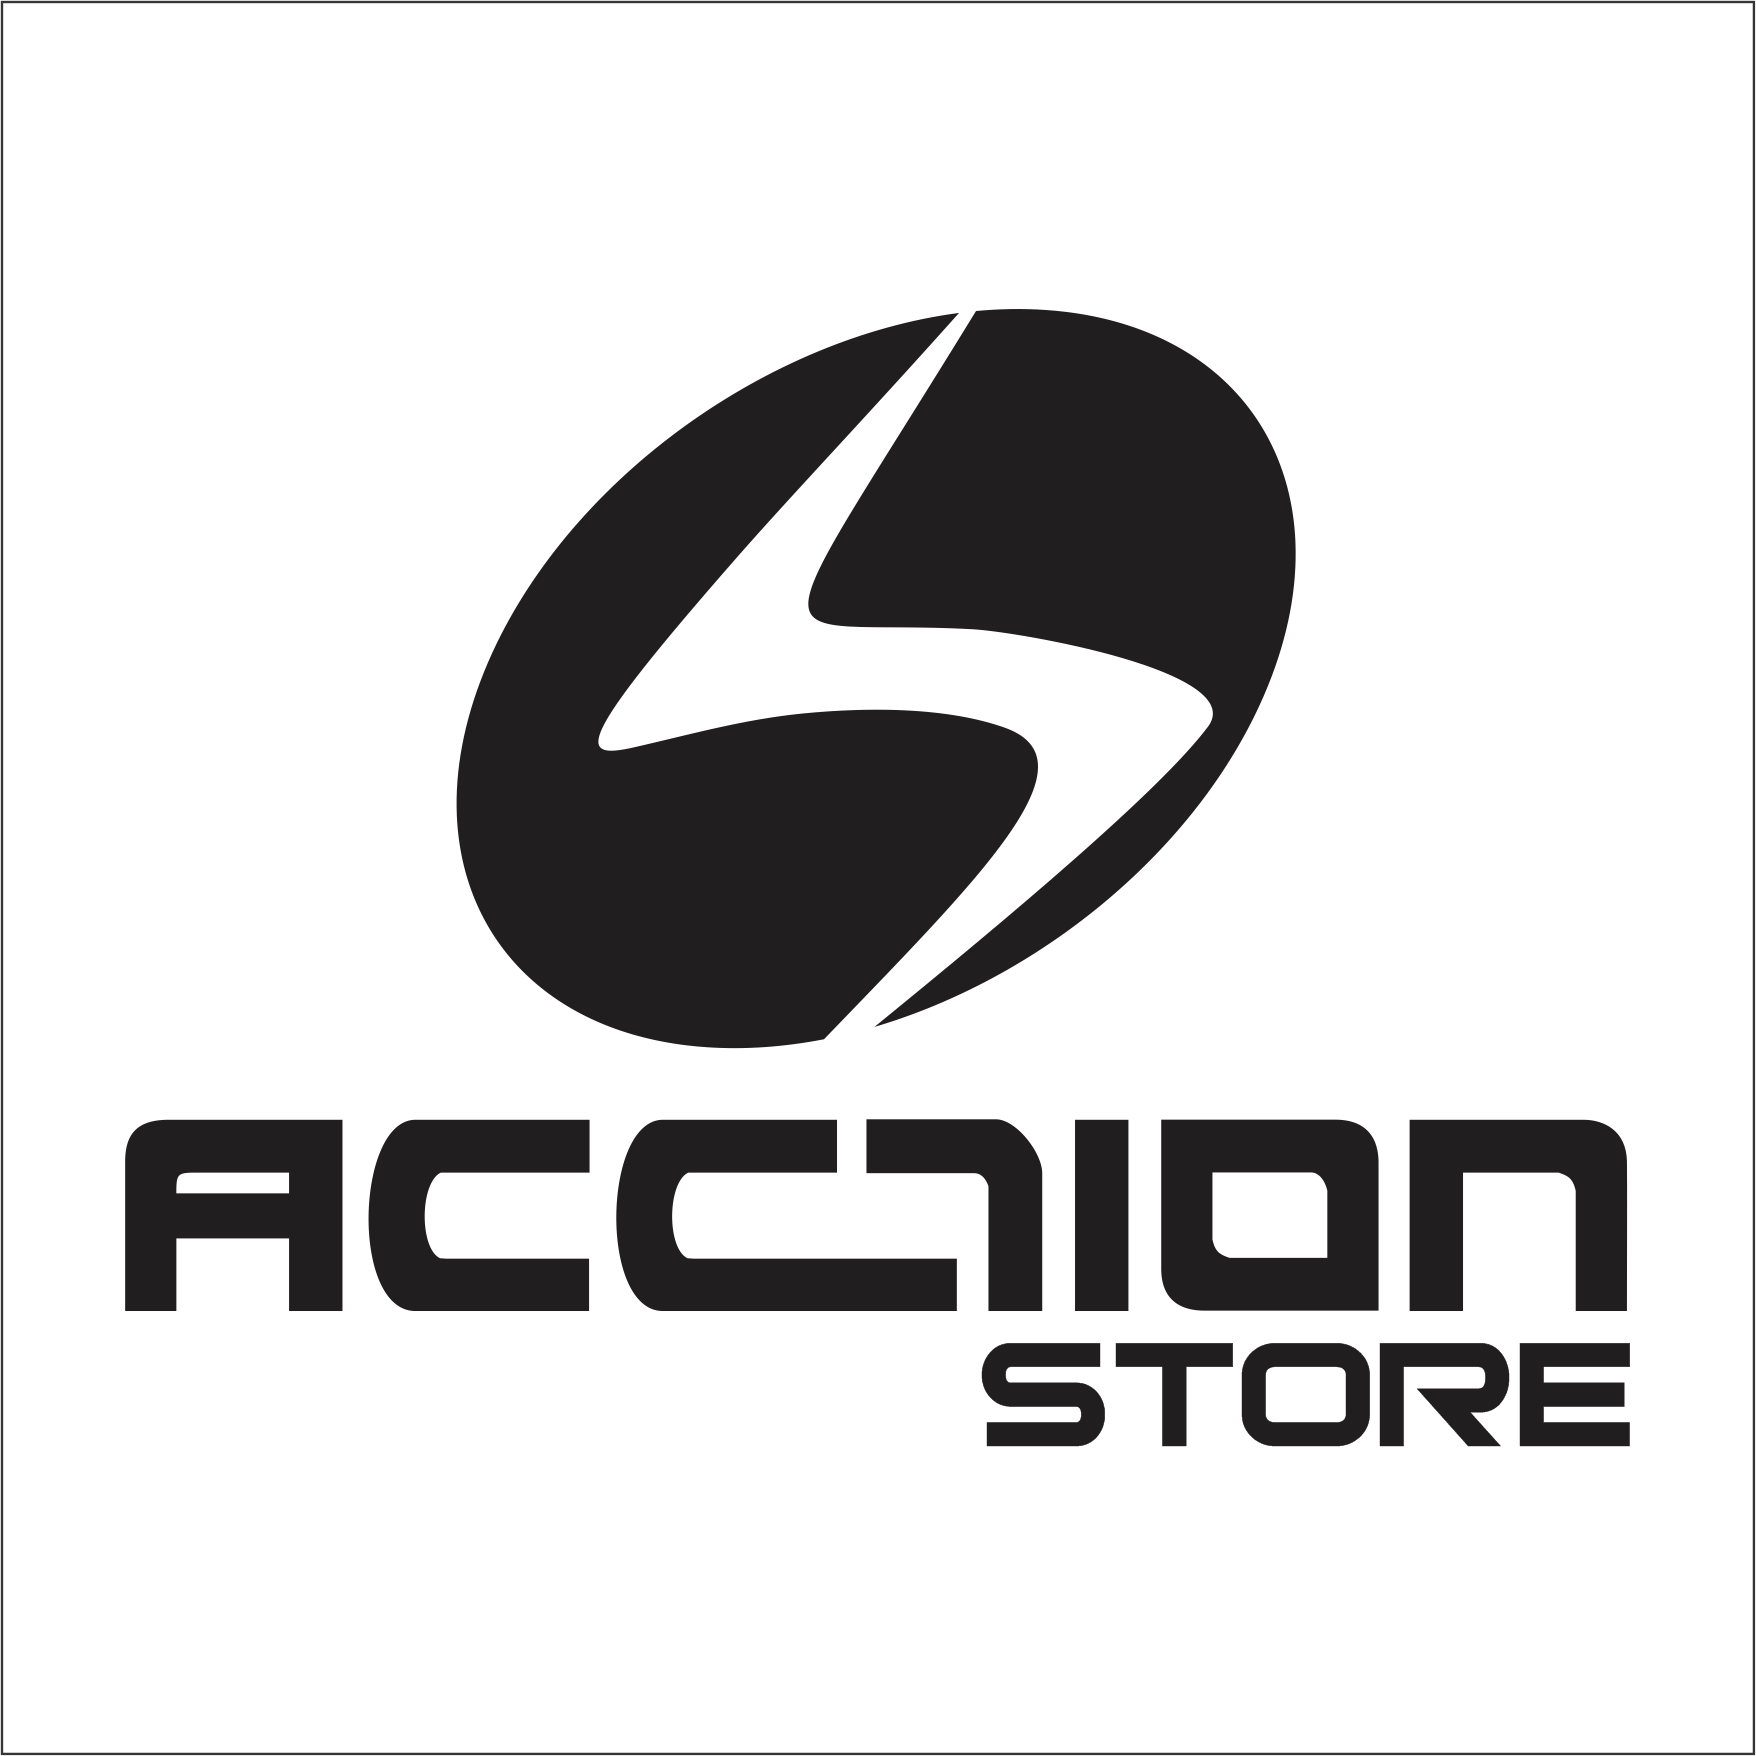 ACCTION STORE